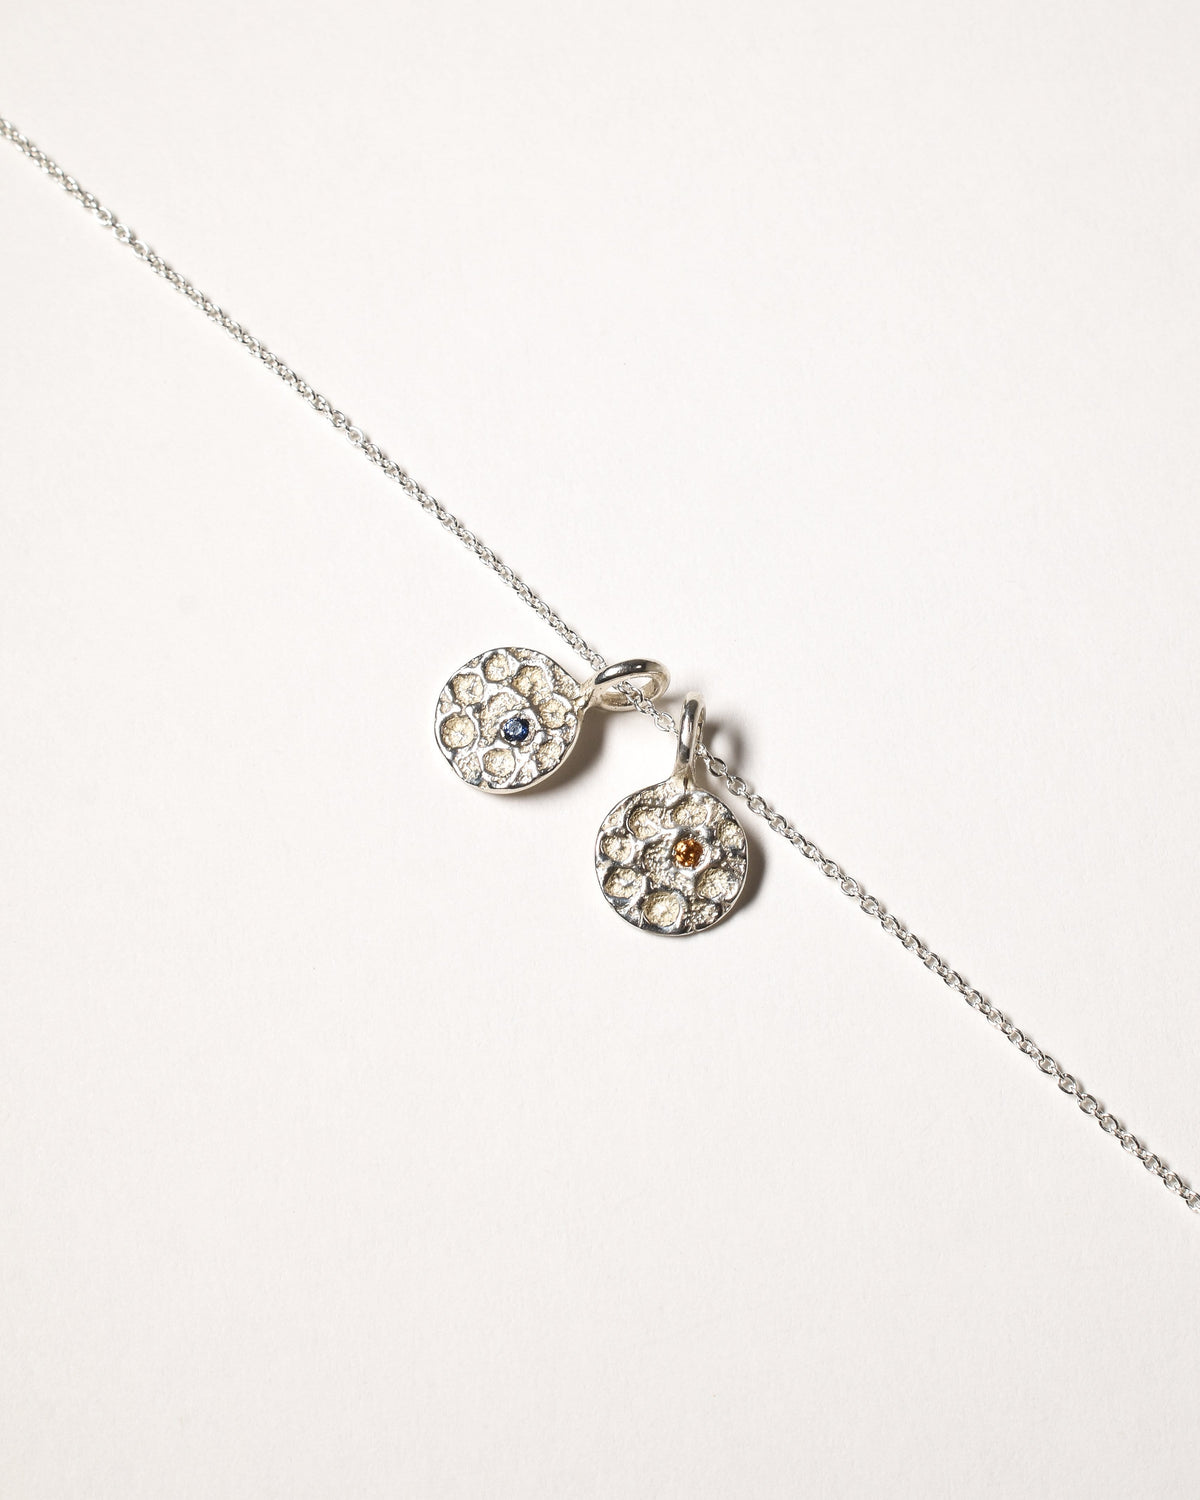 Sapphire Birthstone Necklace - September - Sterling Silver